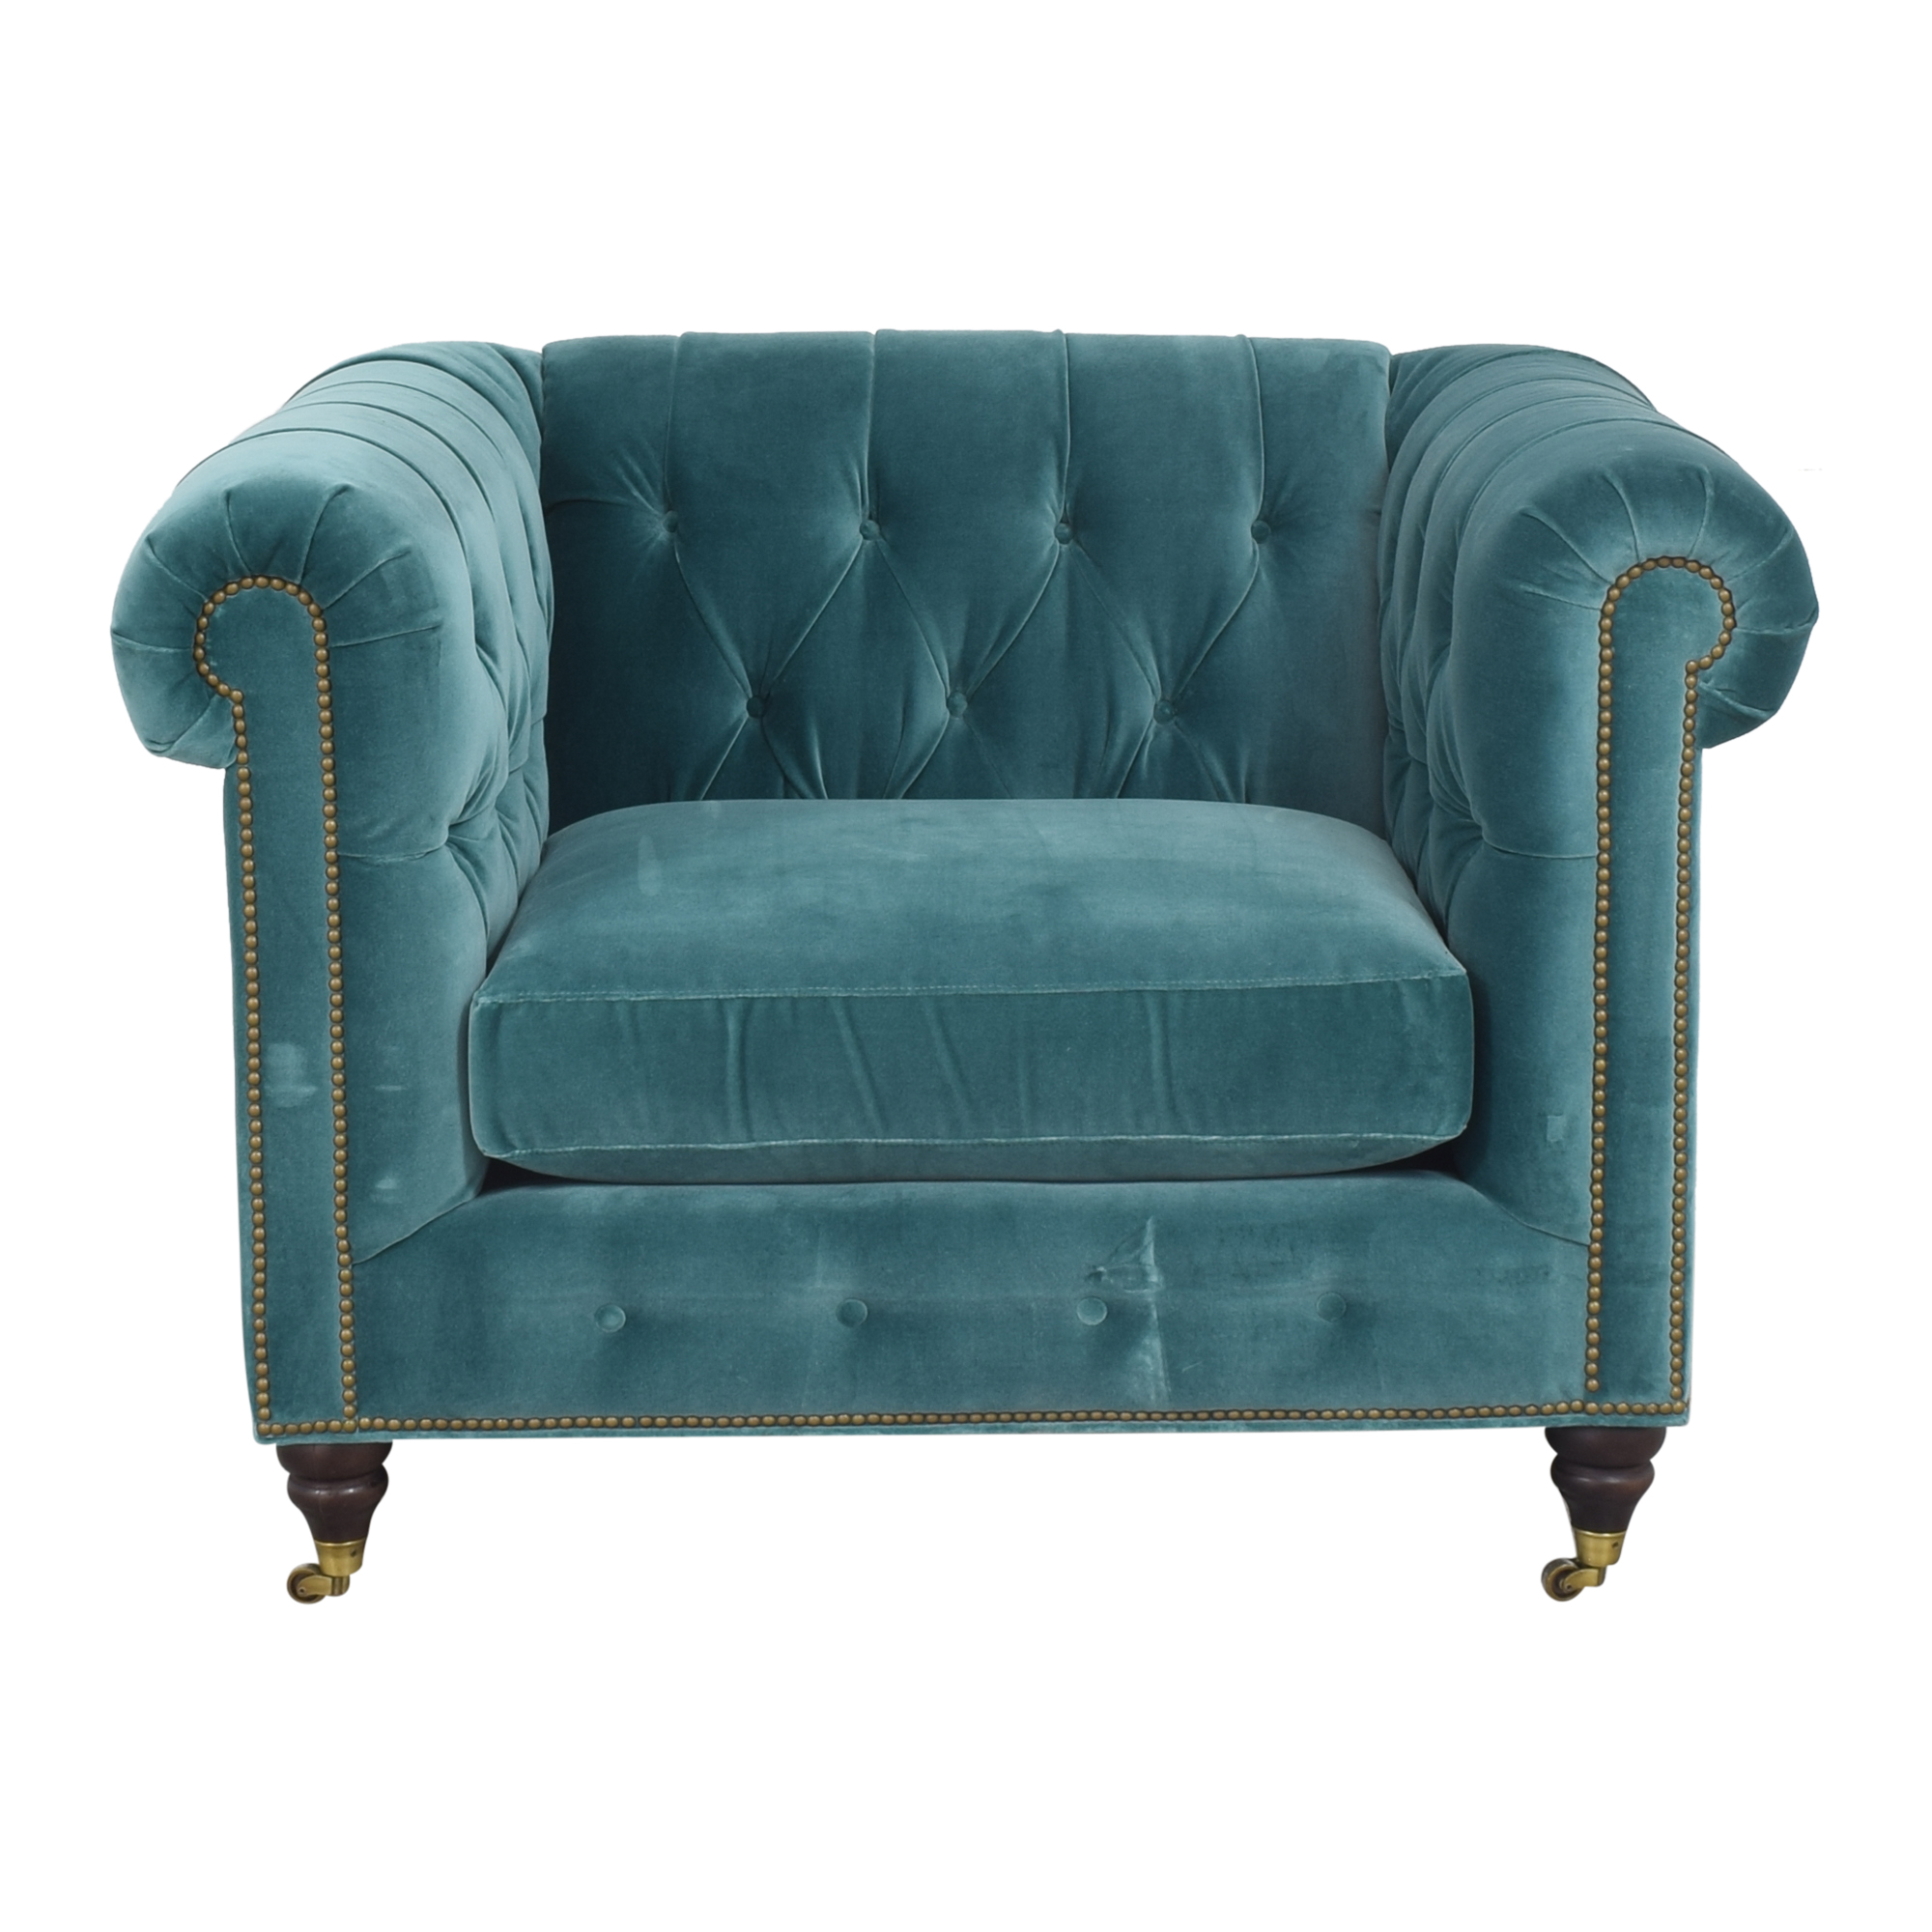 Anthropologie Lyre Chesterfield Chair / Accent Chairs